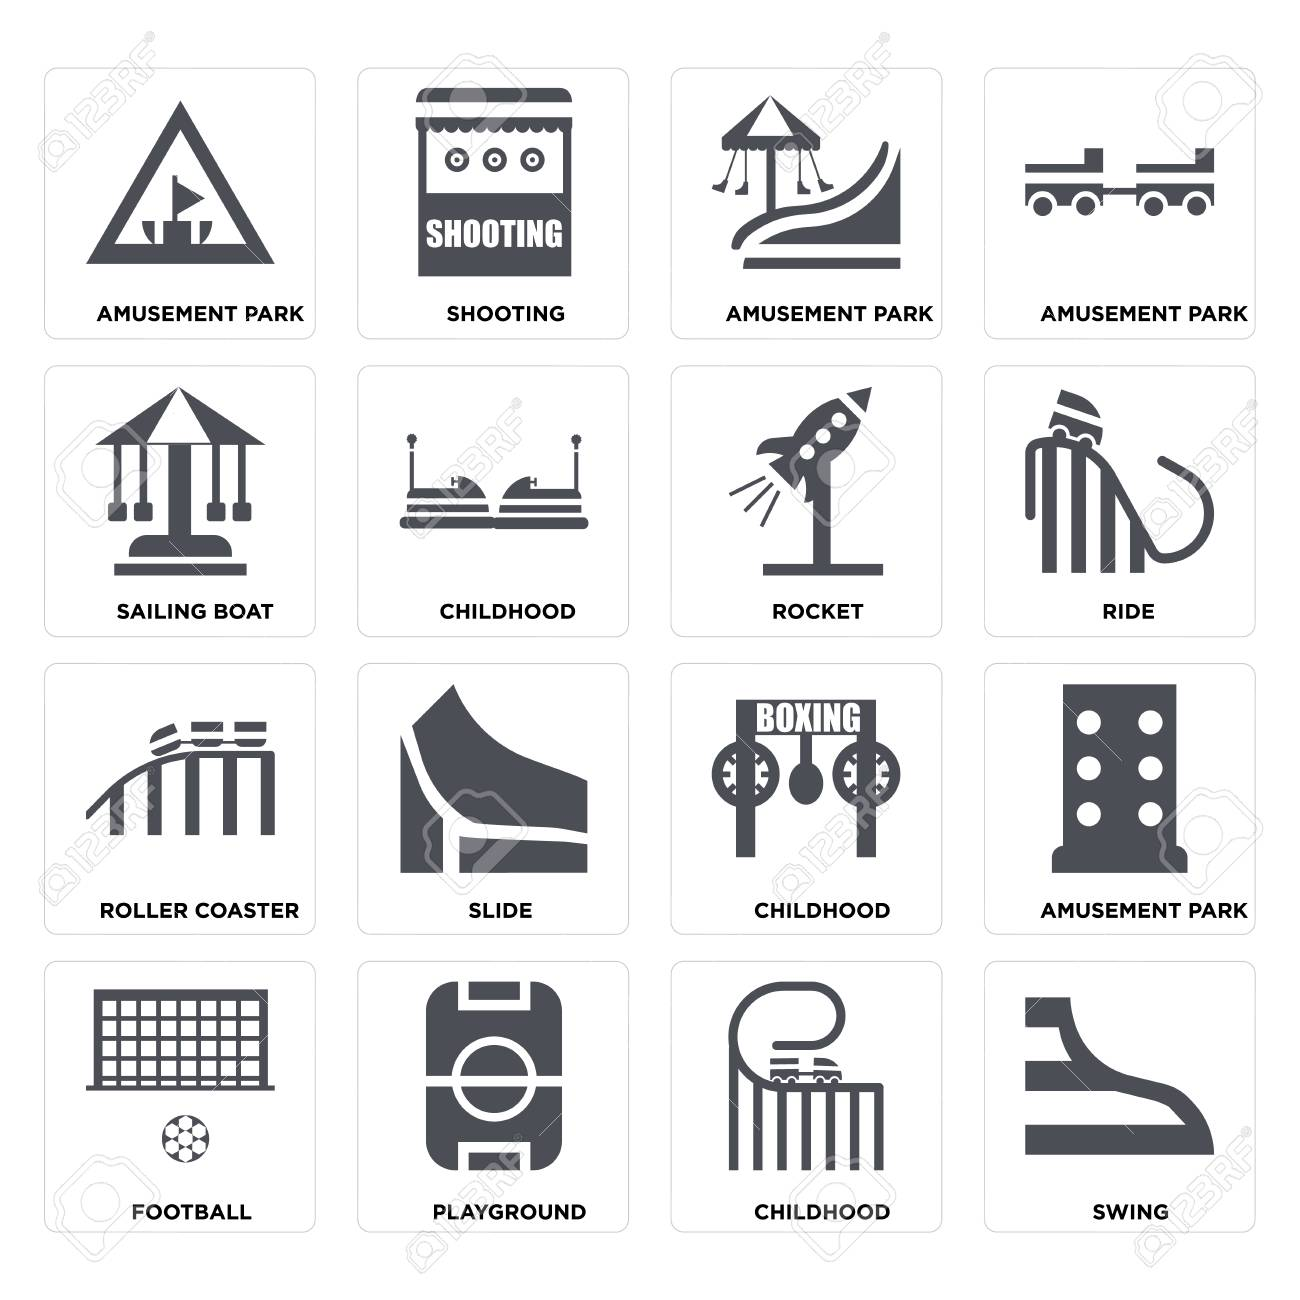 Set Of 16 icons such as Swing, Childhood, Playground, Football, Amusement park, Sailing boat, Roller coaster, Rocket on transparent background, pixel perfect - 116181792